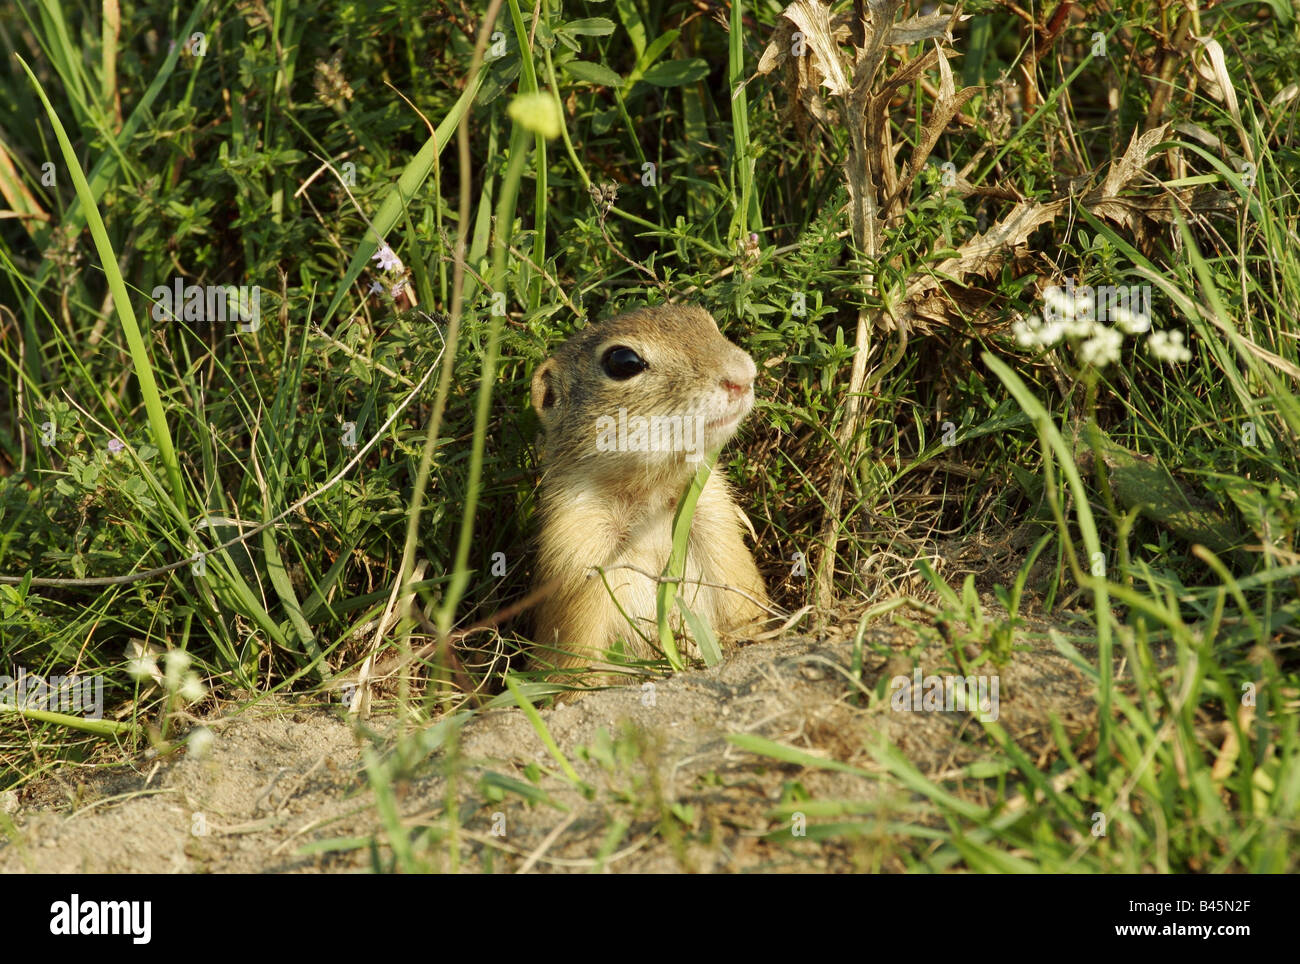 zoology / animals, mammal / mammalian, Sciuridae, European ground squirrel (Spermophilus citellus), looking out - Stock Image